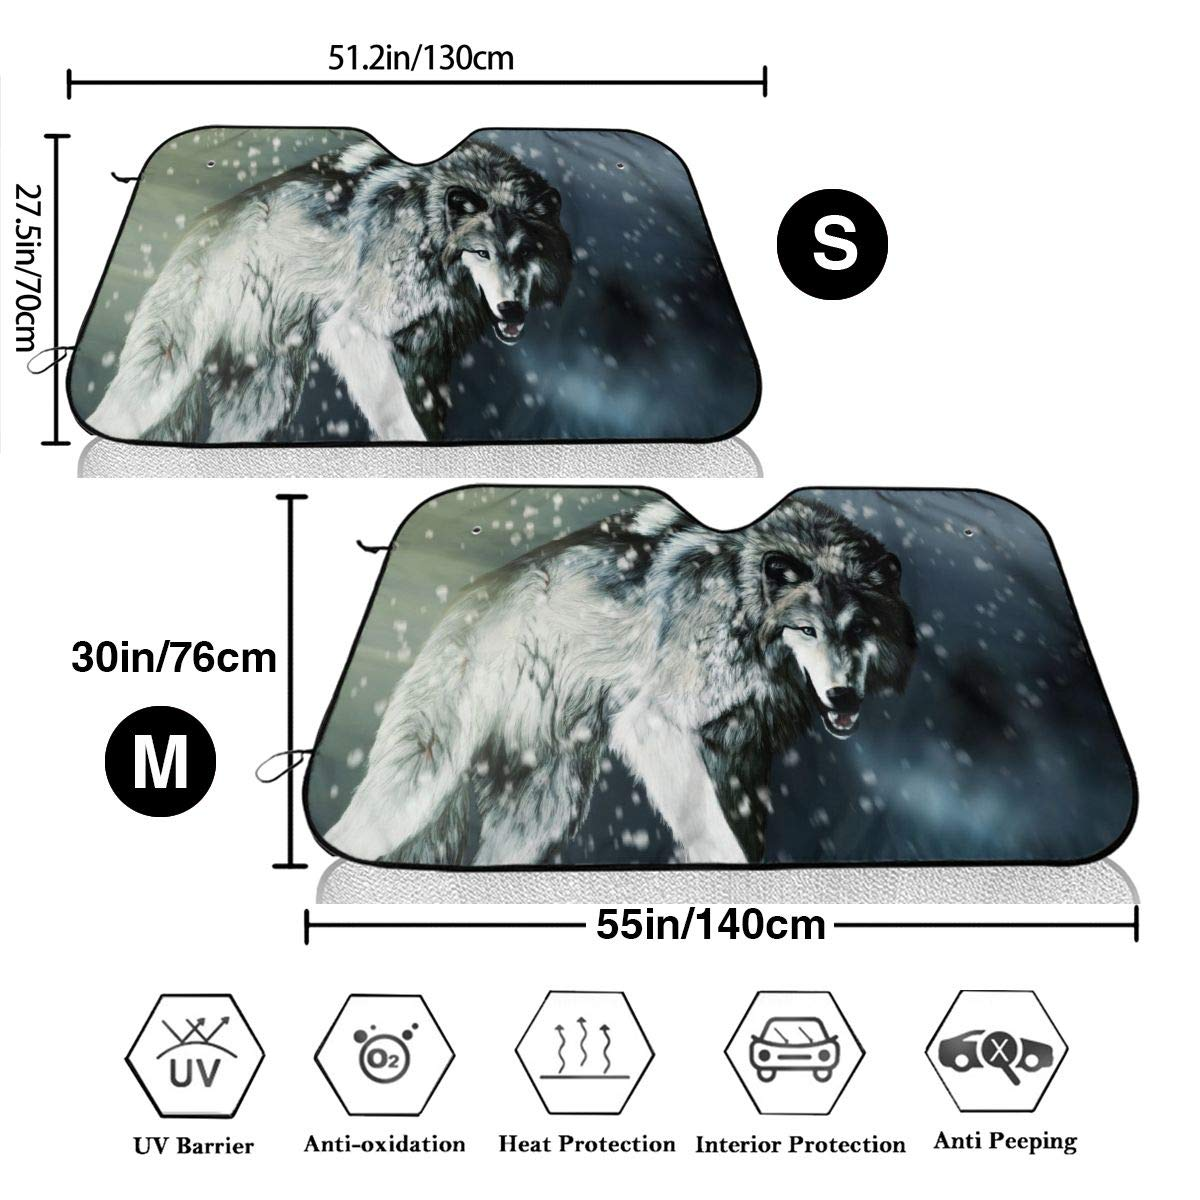 S 51.2x27.5 Inches Universal Size Cartoon Anime Wolf Car Windshield Sun Shade Blocks UV Rays Sun Visor Protector Sunshade to Keep Your Vehicle Cool and Damage Free,Easy to Use